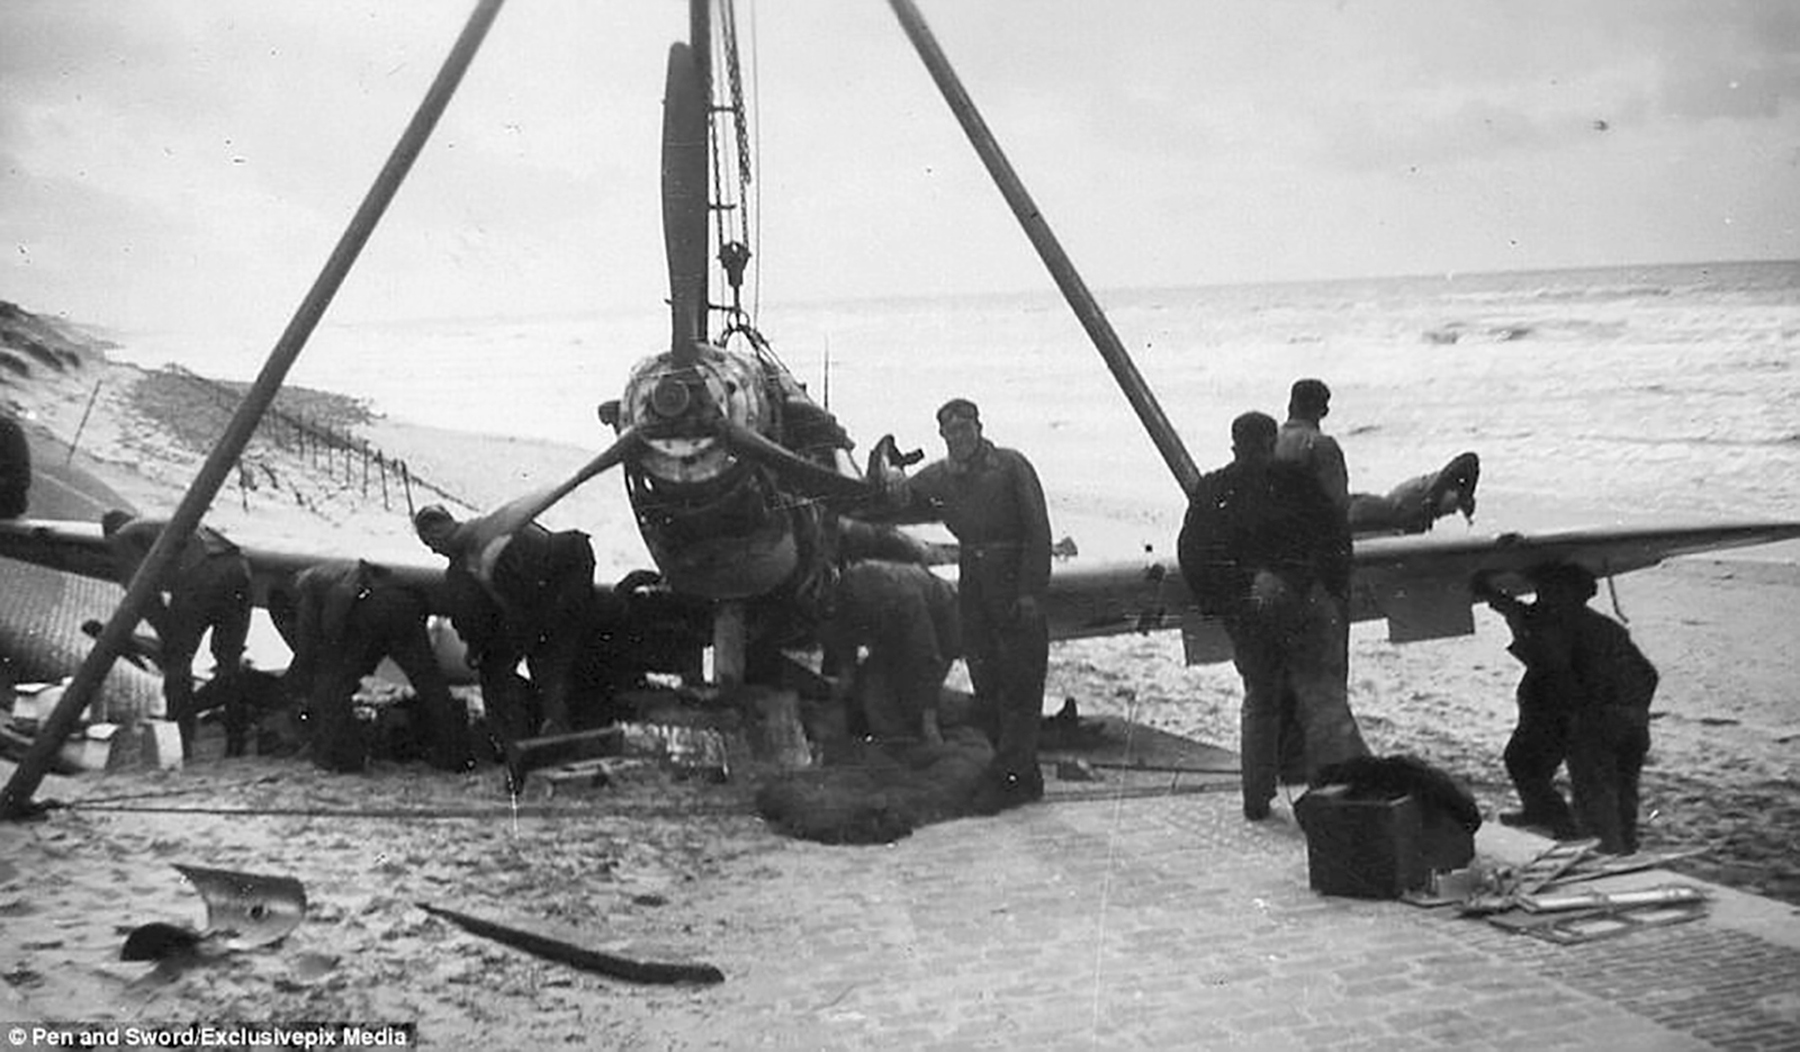 Spitfire MkI being salaveged by Germans after beaching at Dunkirk 1940 01